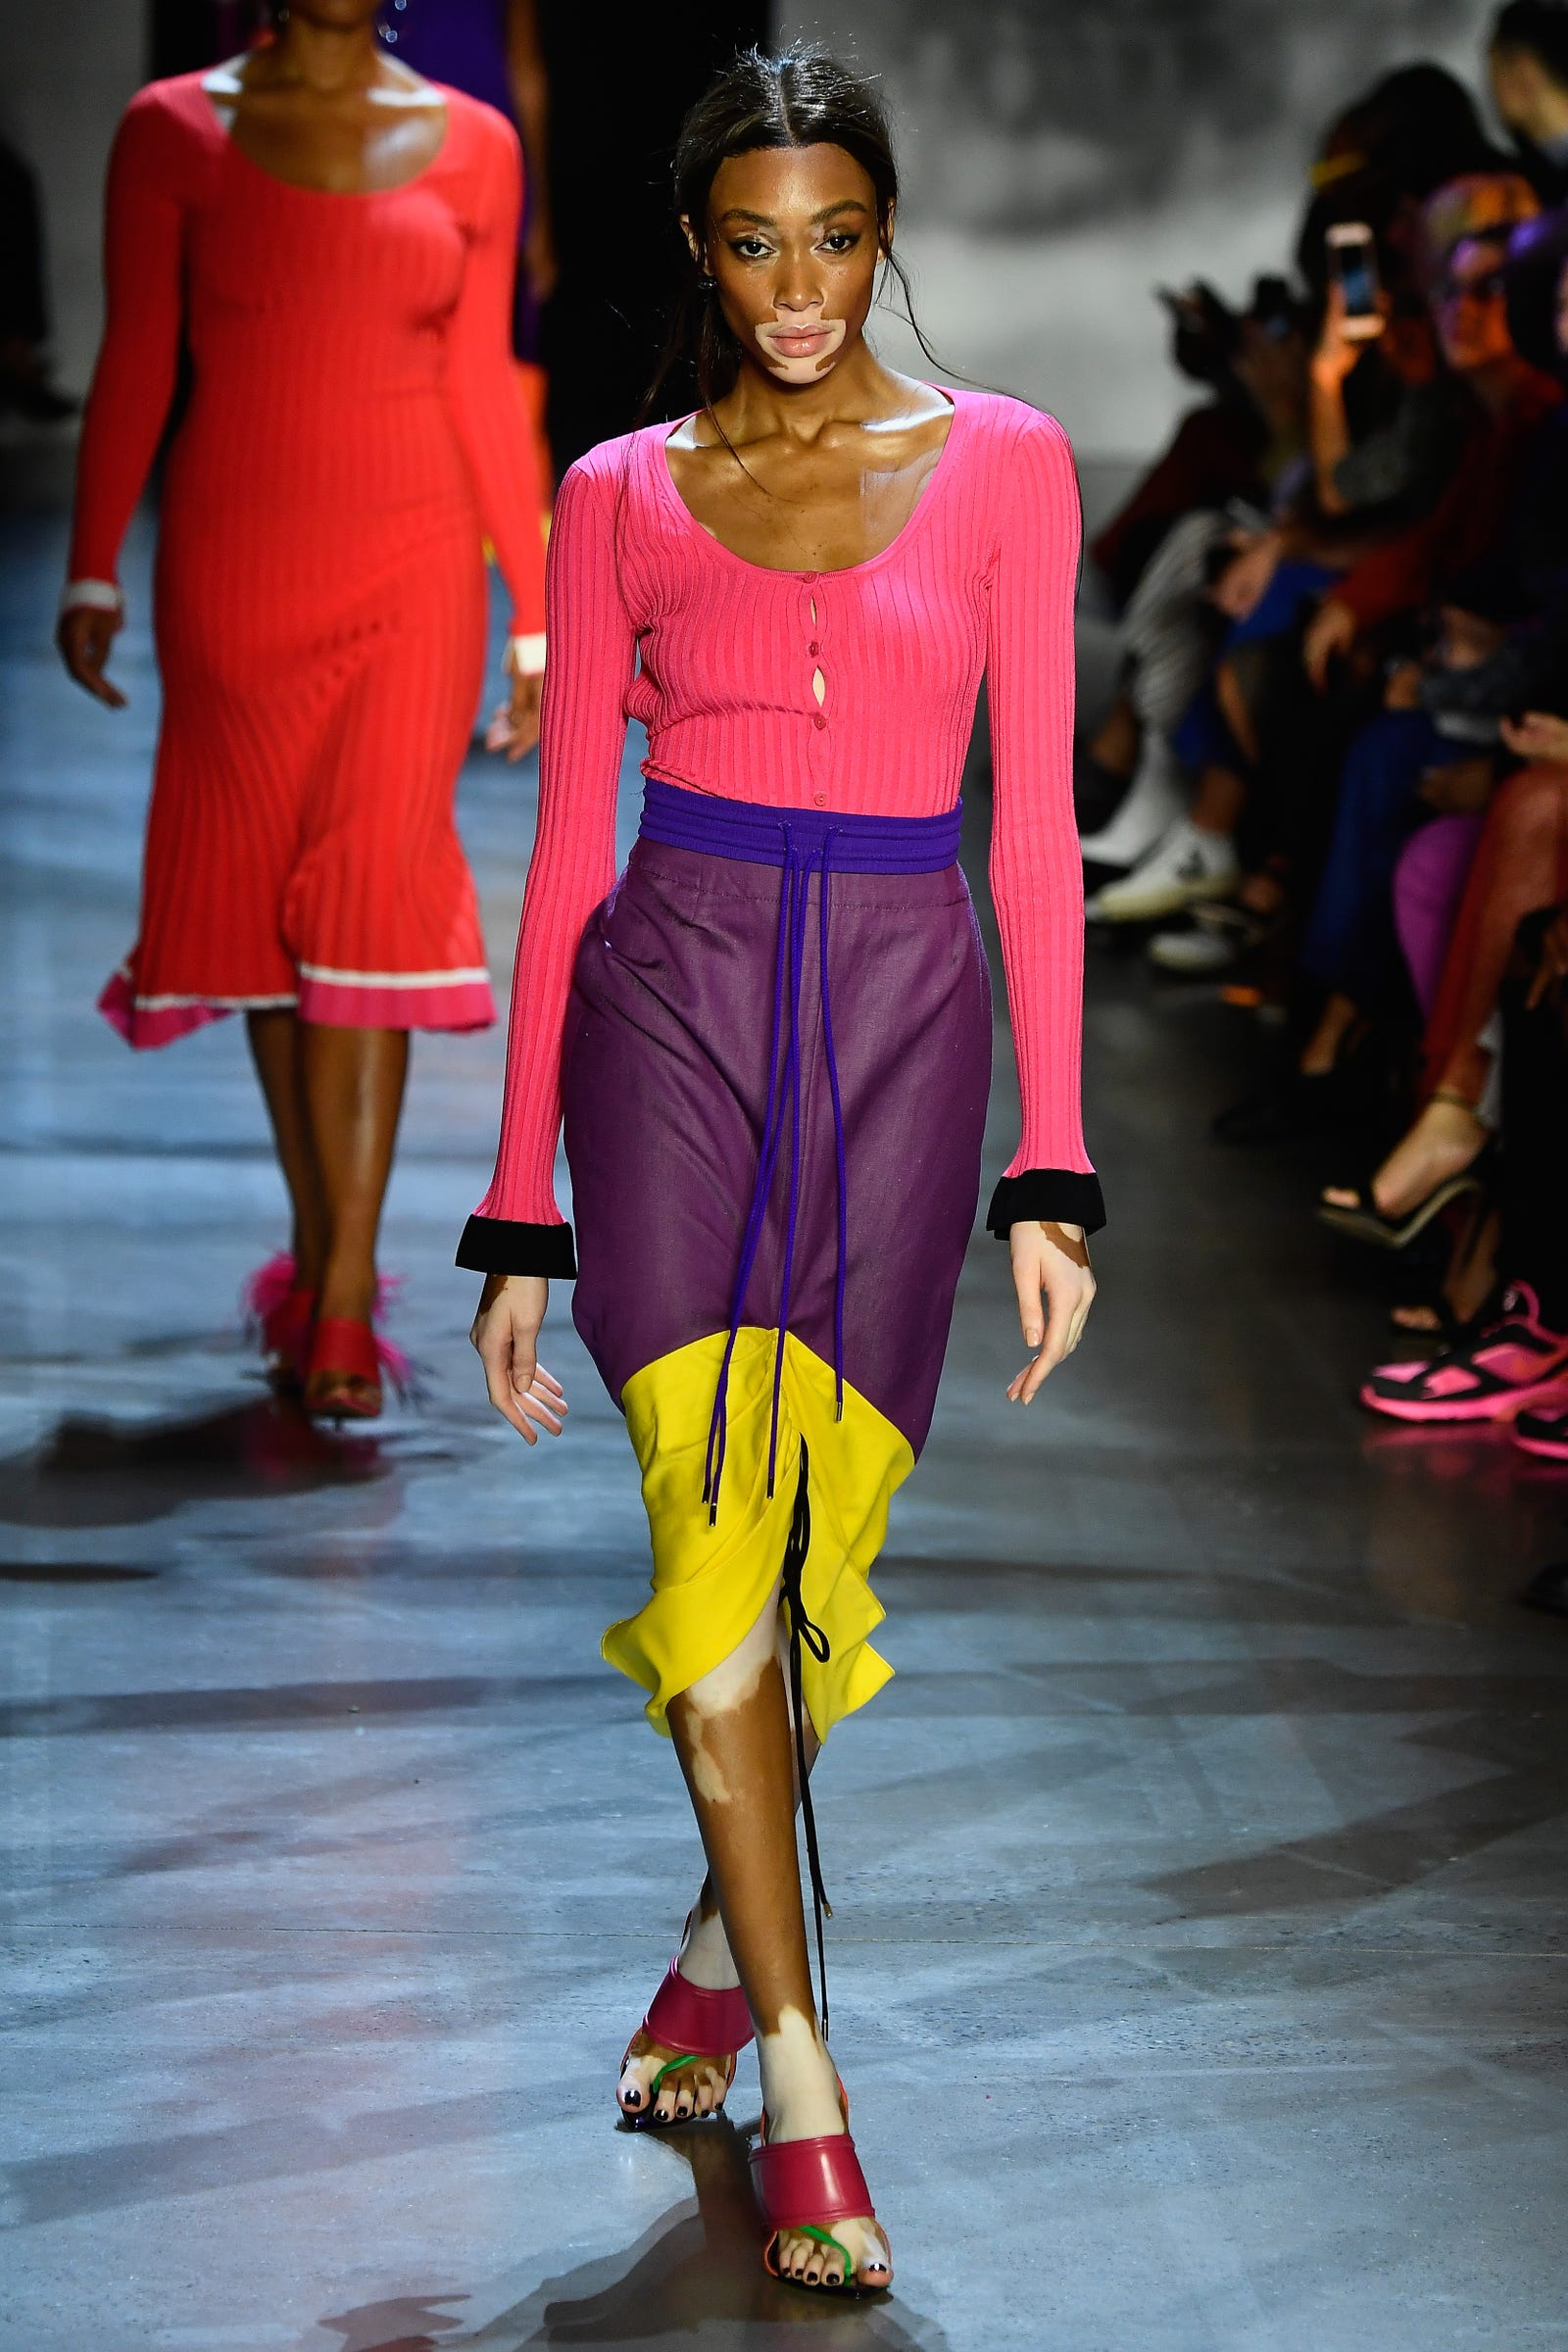 Winnie Harlow walks the runway at Prabal Gurung show during New York Fashion Week: The Shows at Gallery I at Spring Studios on September 9, 2018 in New York City.